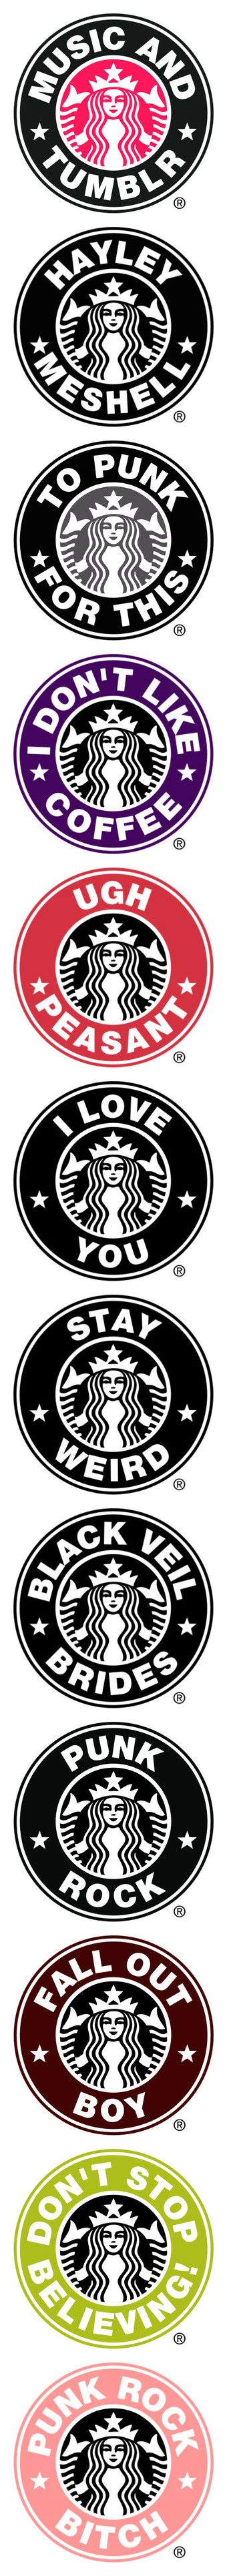 """Starbuck Logos"" by sbeathard ❤ liked on Polyvore featuring fillers, words, pictures, quotes, starbucks, text, phrase, saying, circle and backgrounds"